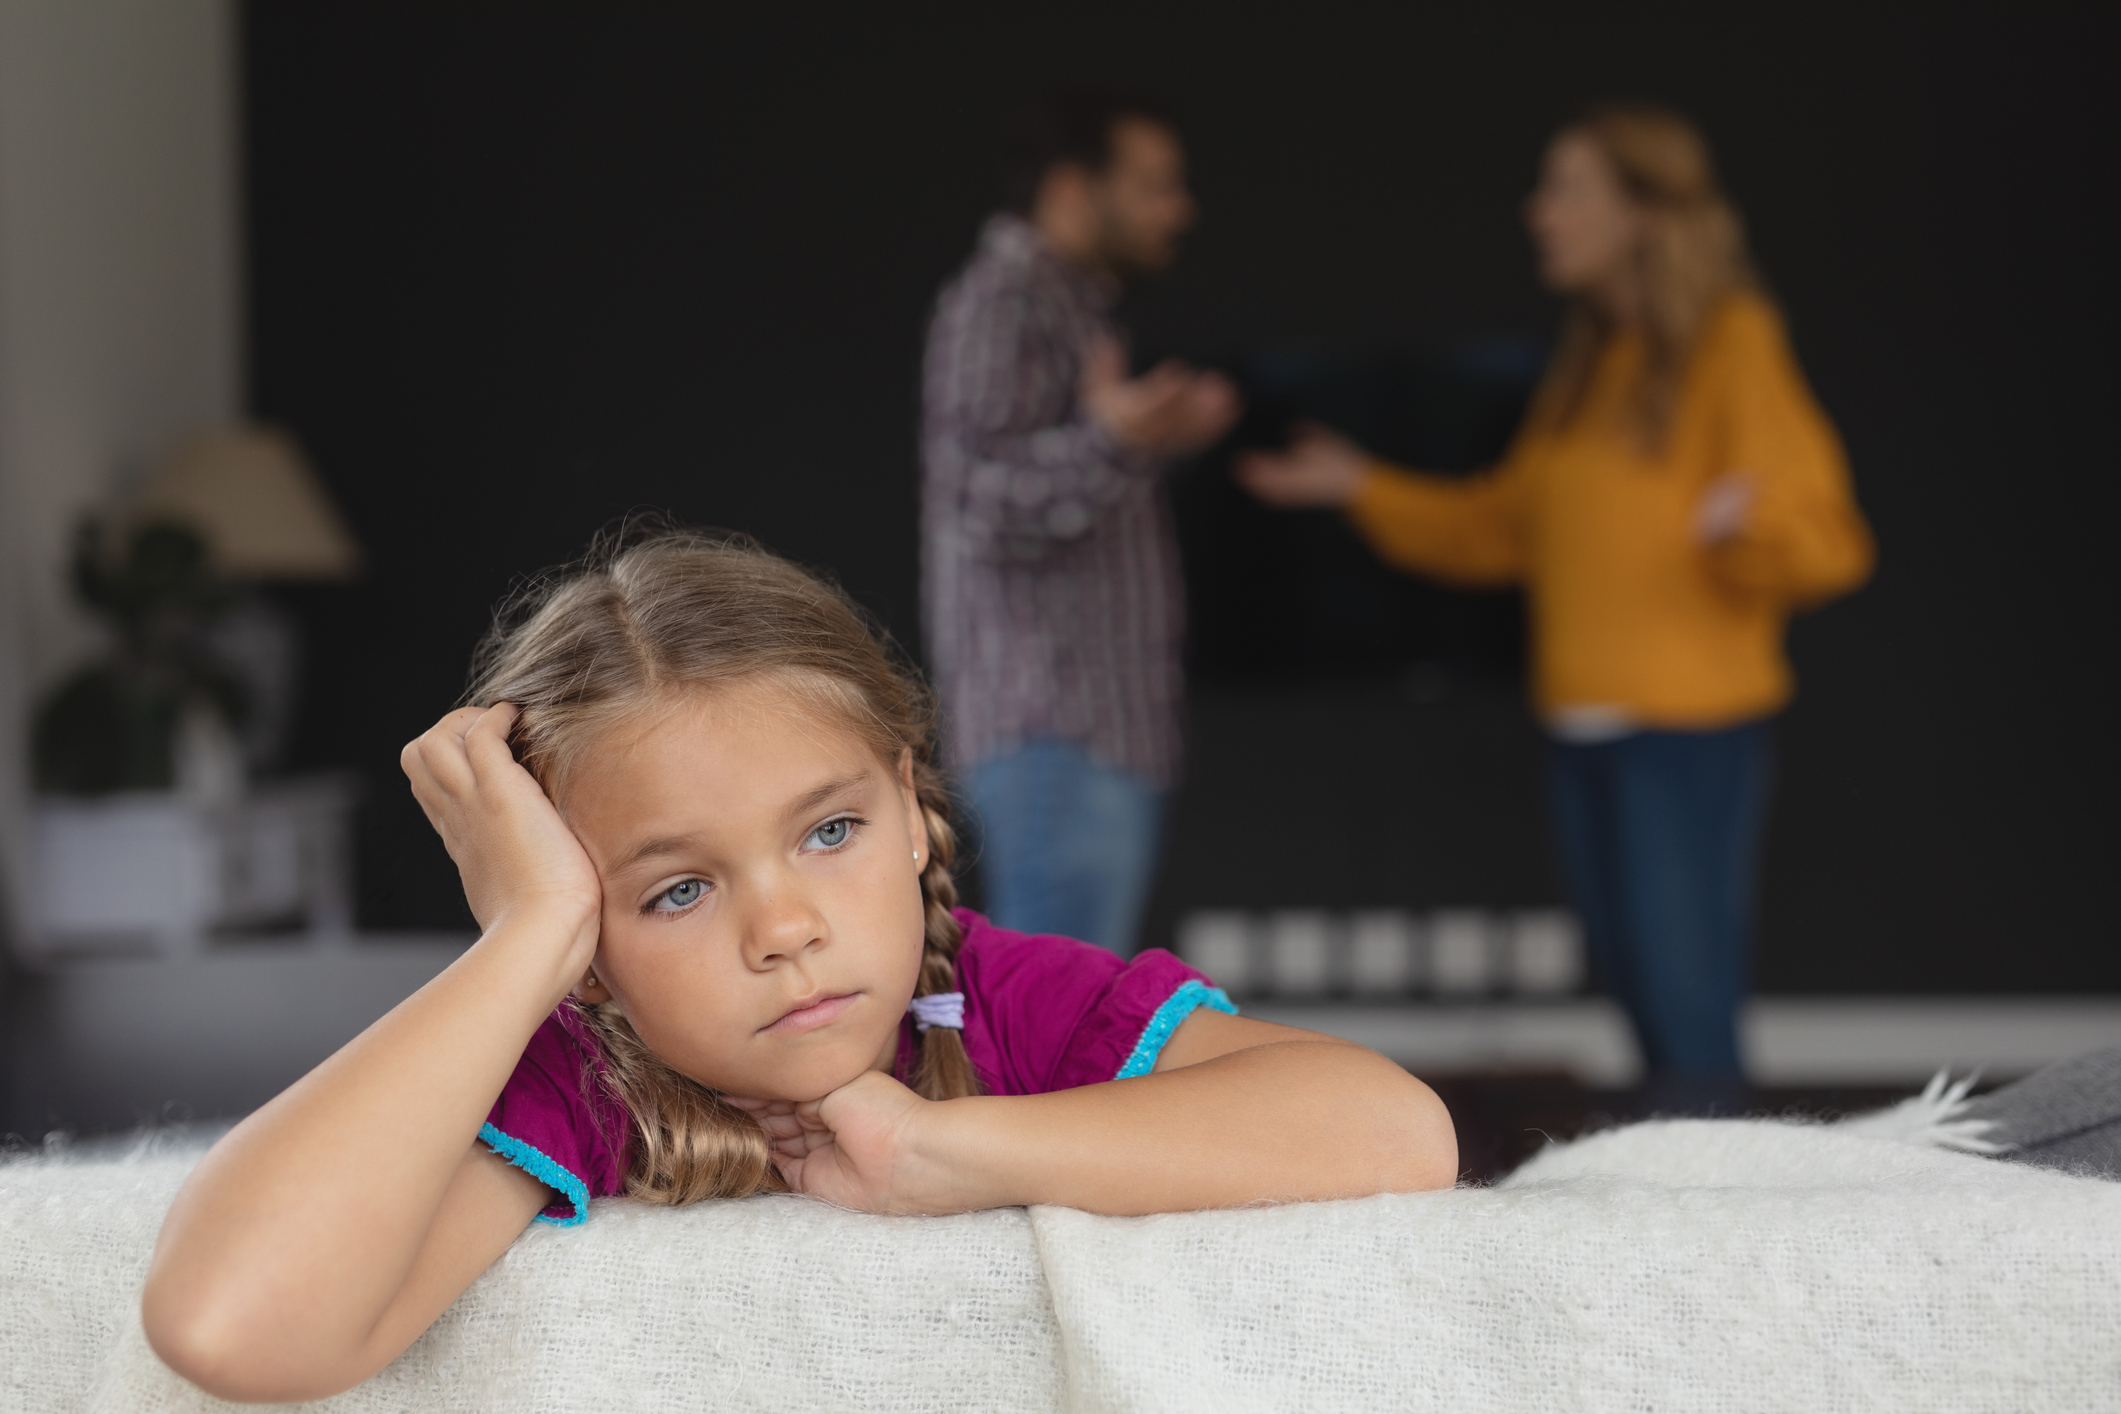 Sad little girl looks off camera while parents fight in background